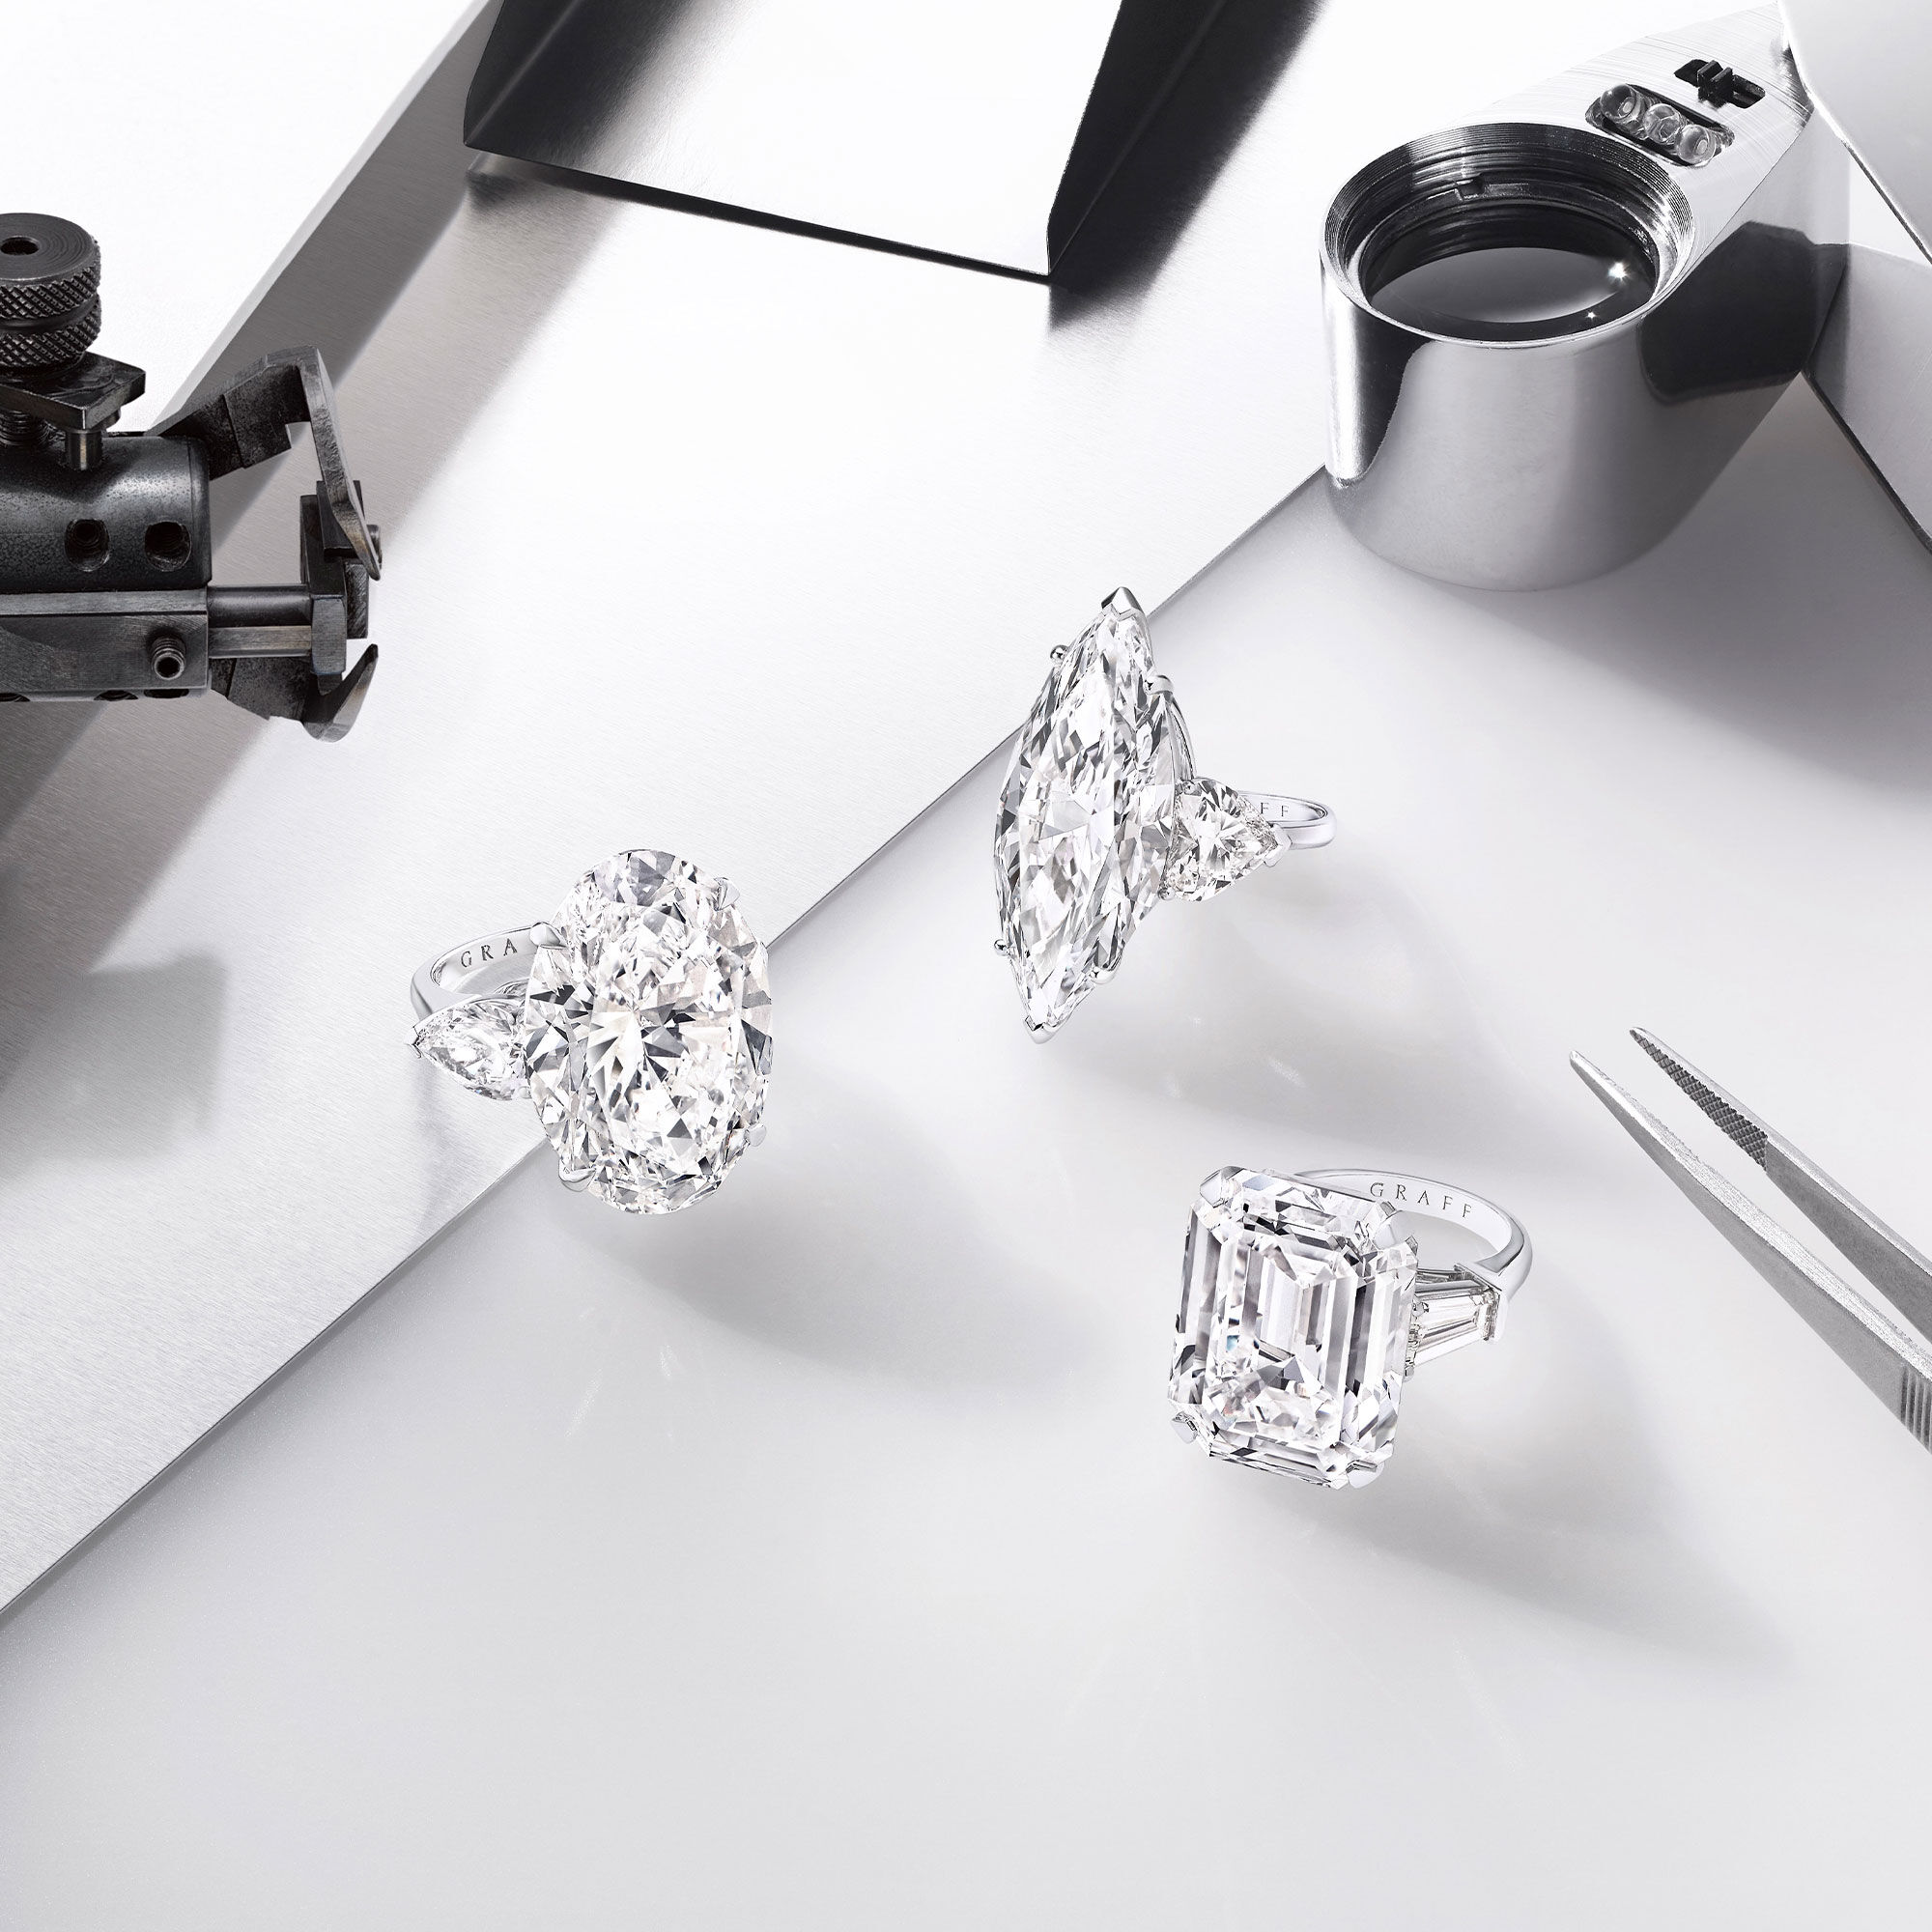 Three high jewellery diamond ring by Graff with diamond setting tools